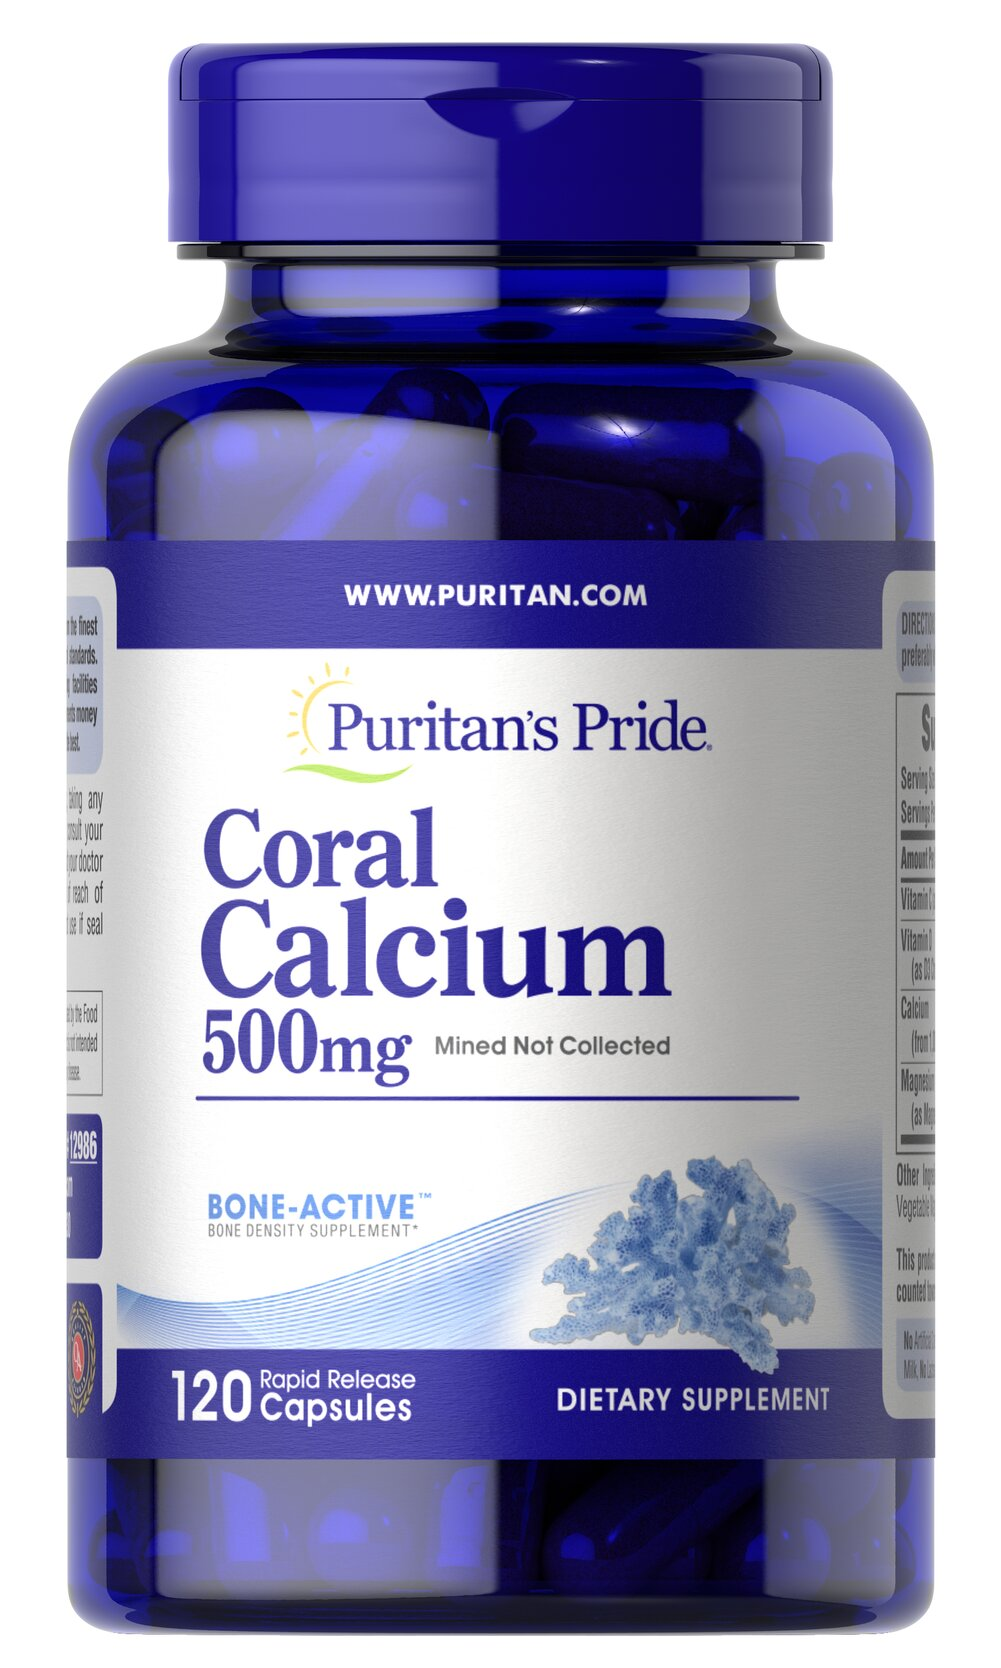 Coral Calcium Complex <p>Today's modern farming and food processing methods can often deplete valuable minerals from our diet. Our Coral Calcium formulation includes Coral Calcium, Magnesium and Vitamin C for bone health, plus Vitamin D to aid in Calcium absorption.** The Coral Calcium in this product is mined, not collected, from an above ground source making it environmentally friendly.</p> 120 Capsules  $14.39